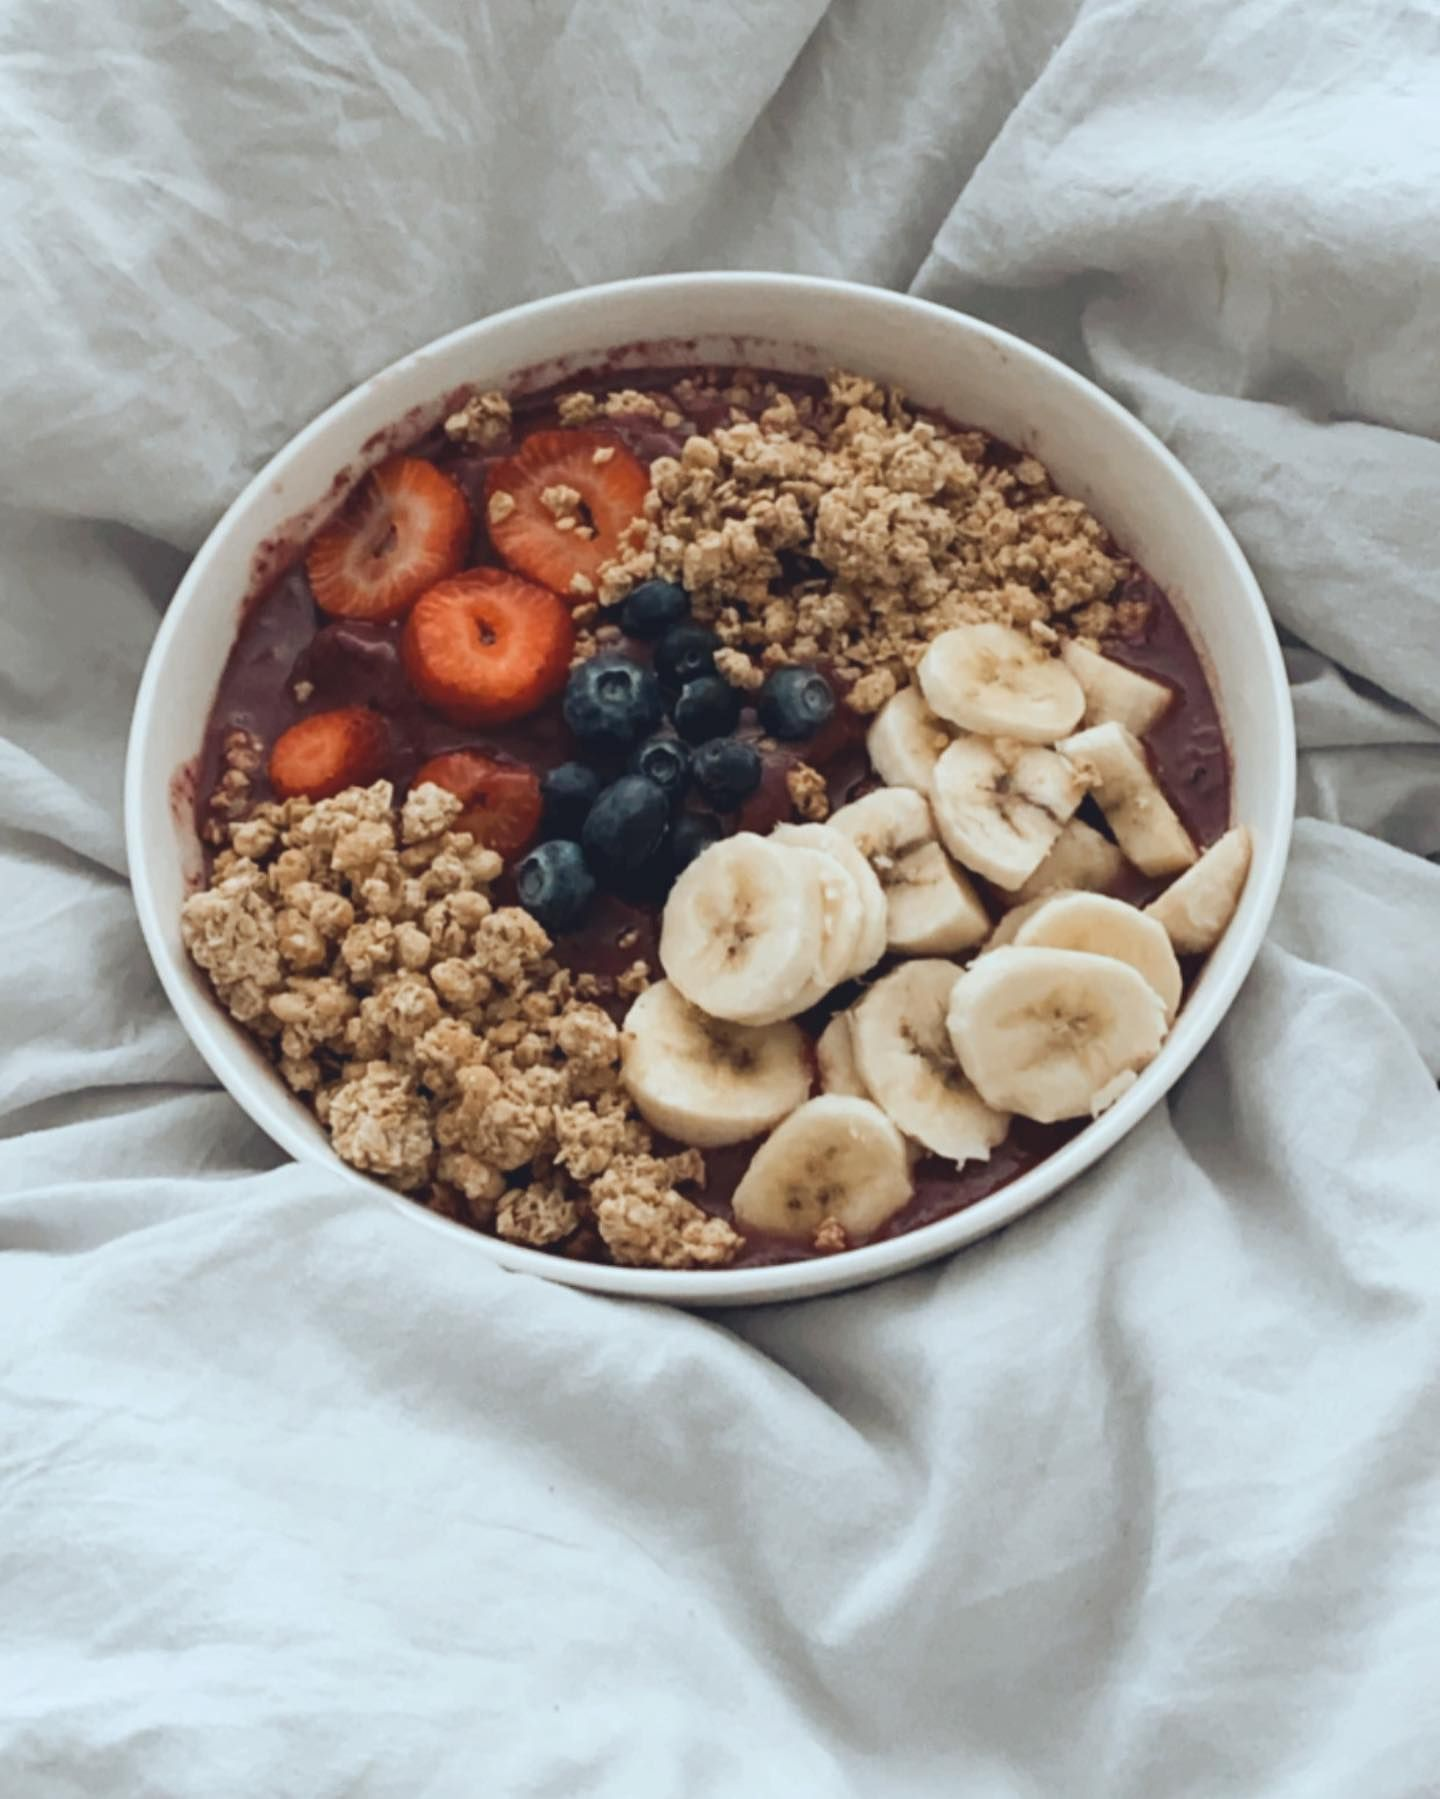 All I Want Lately For Breakfast Lunch Dinner Acaibowl Homemade In 2020 Breakfast Lunch Dinner Breakfast Food